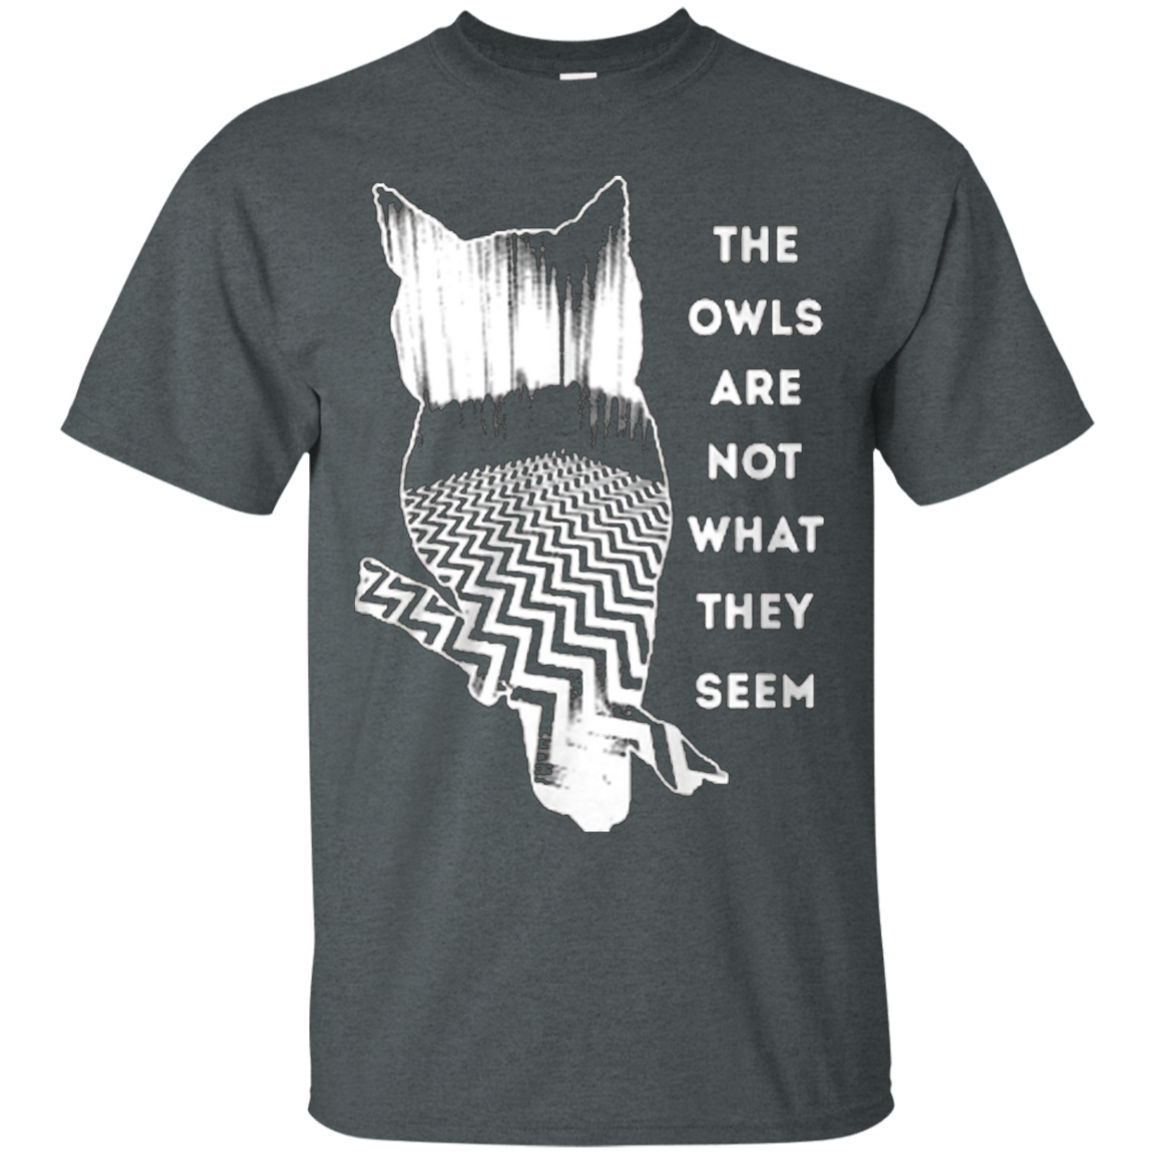 The owls are not what they seem shirt - T-Shirt